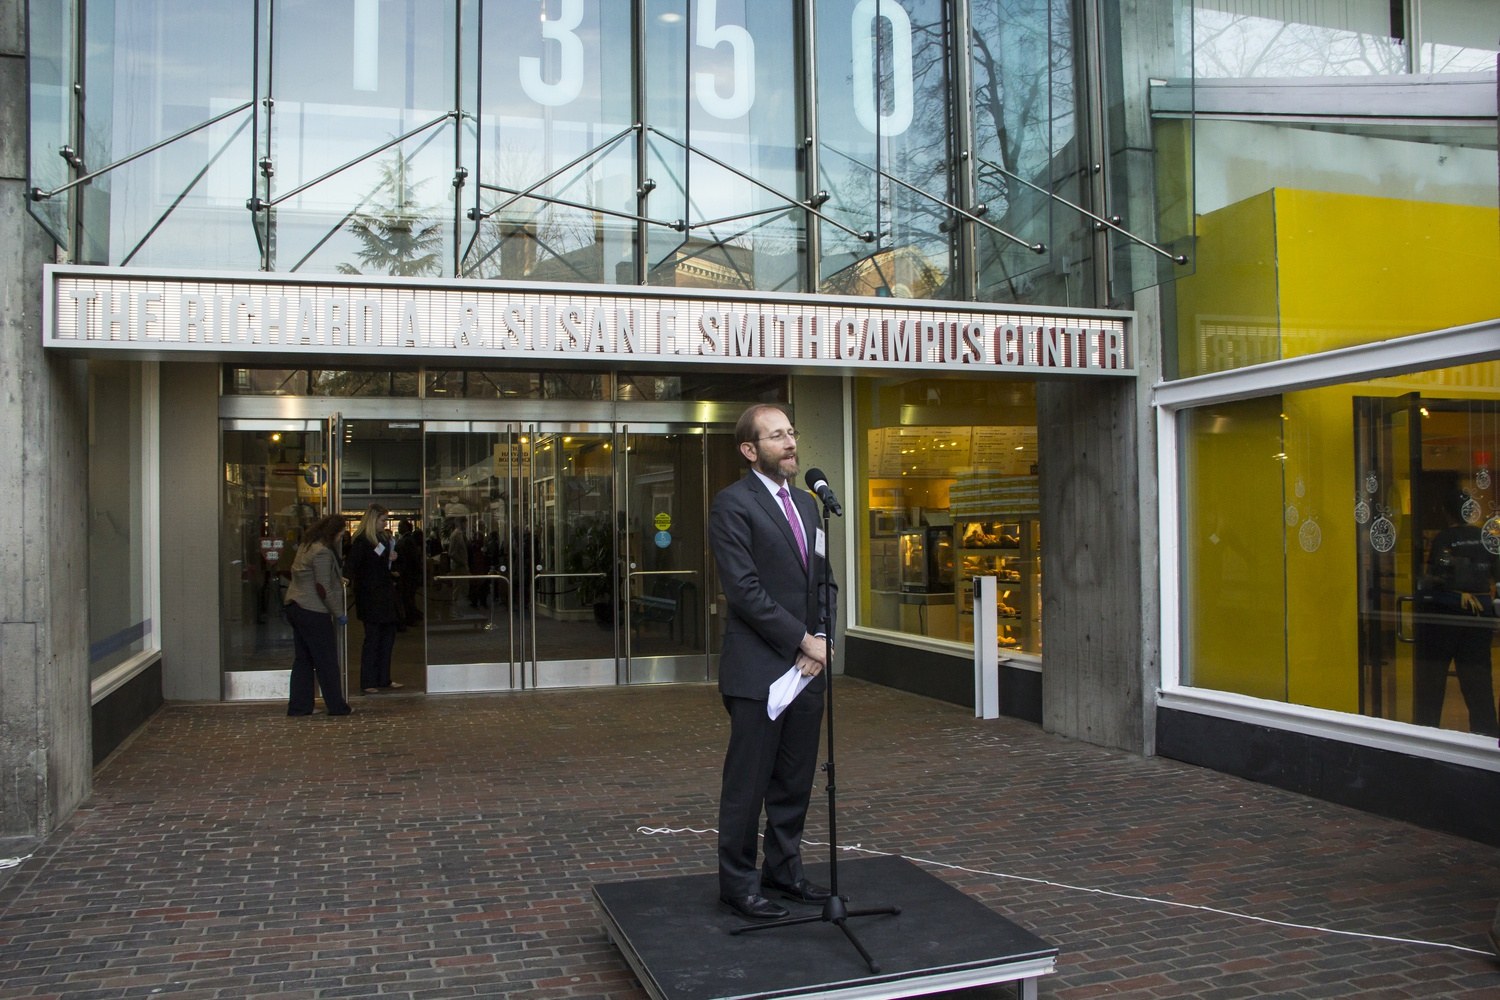 In November 2013, University Provost Alan M. Garber '76 announced the renaming of the Holyoke Center to the Richard A. & Susan F. Smith Campus Center and the renovation project into a new campus center expected to open by 2018.